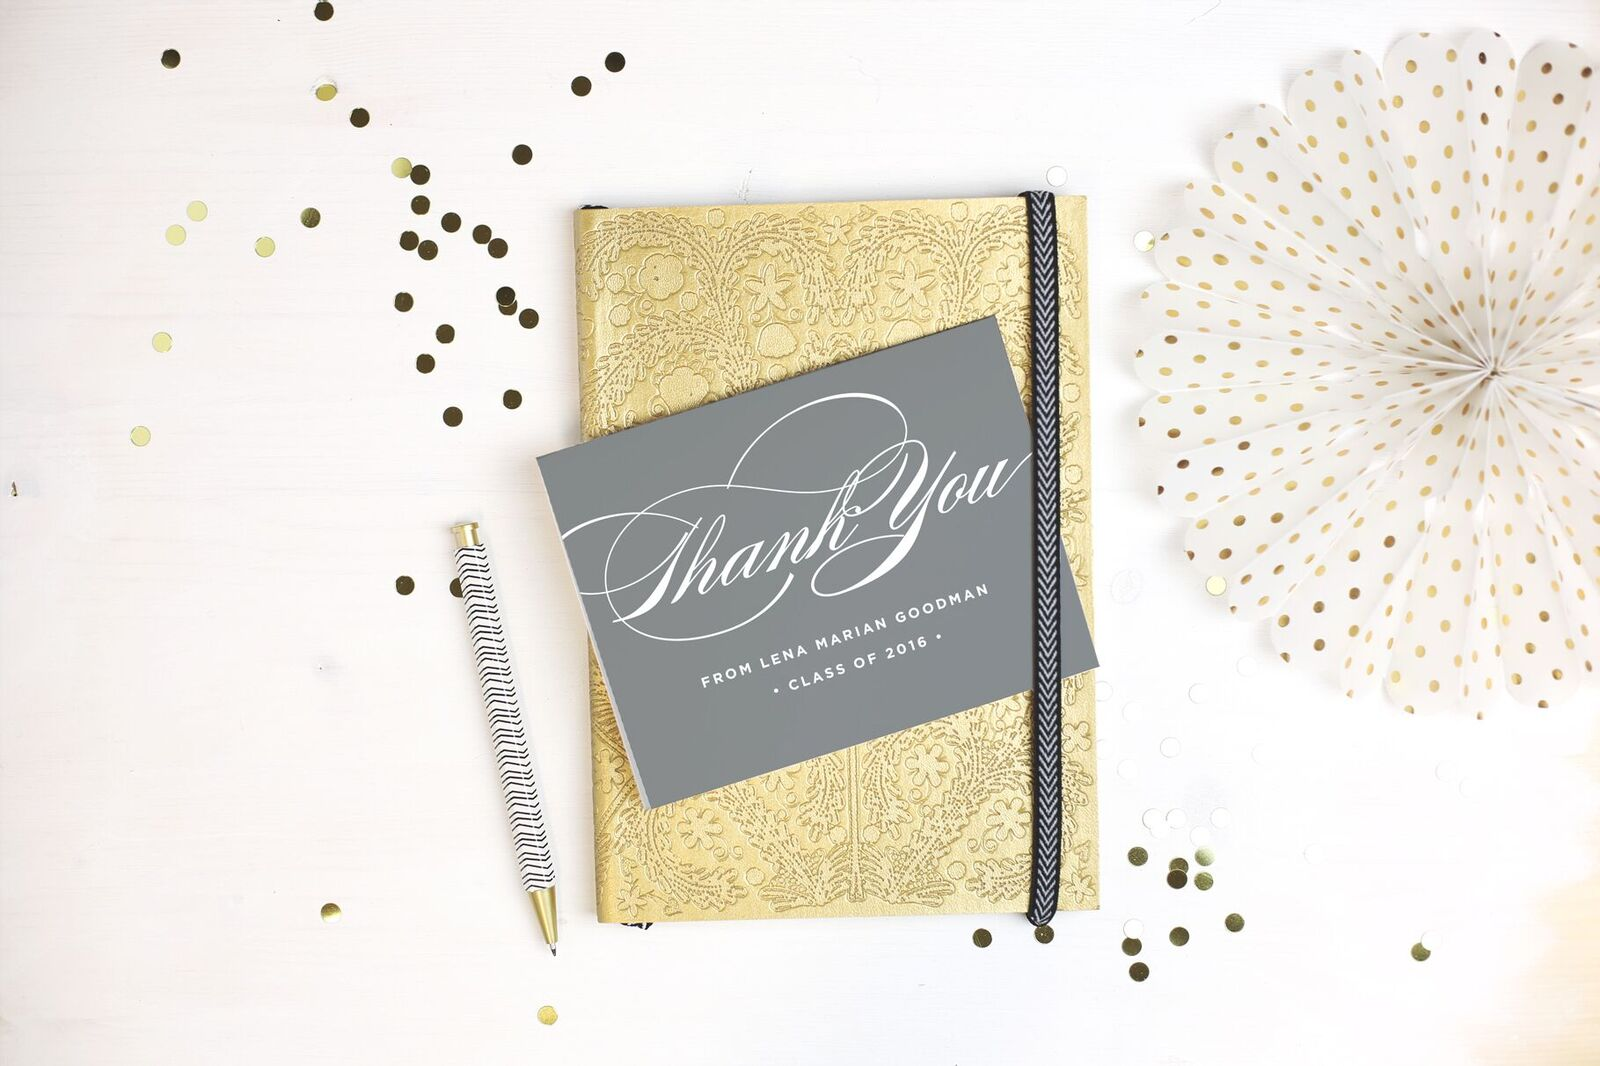 Chic Stationery With Basic Invite.jpeg